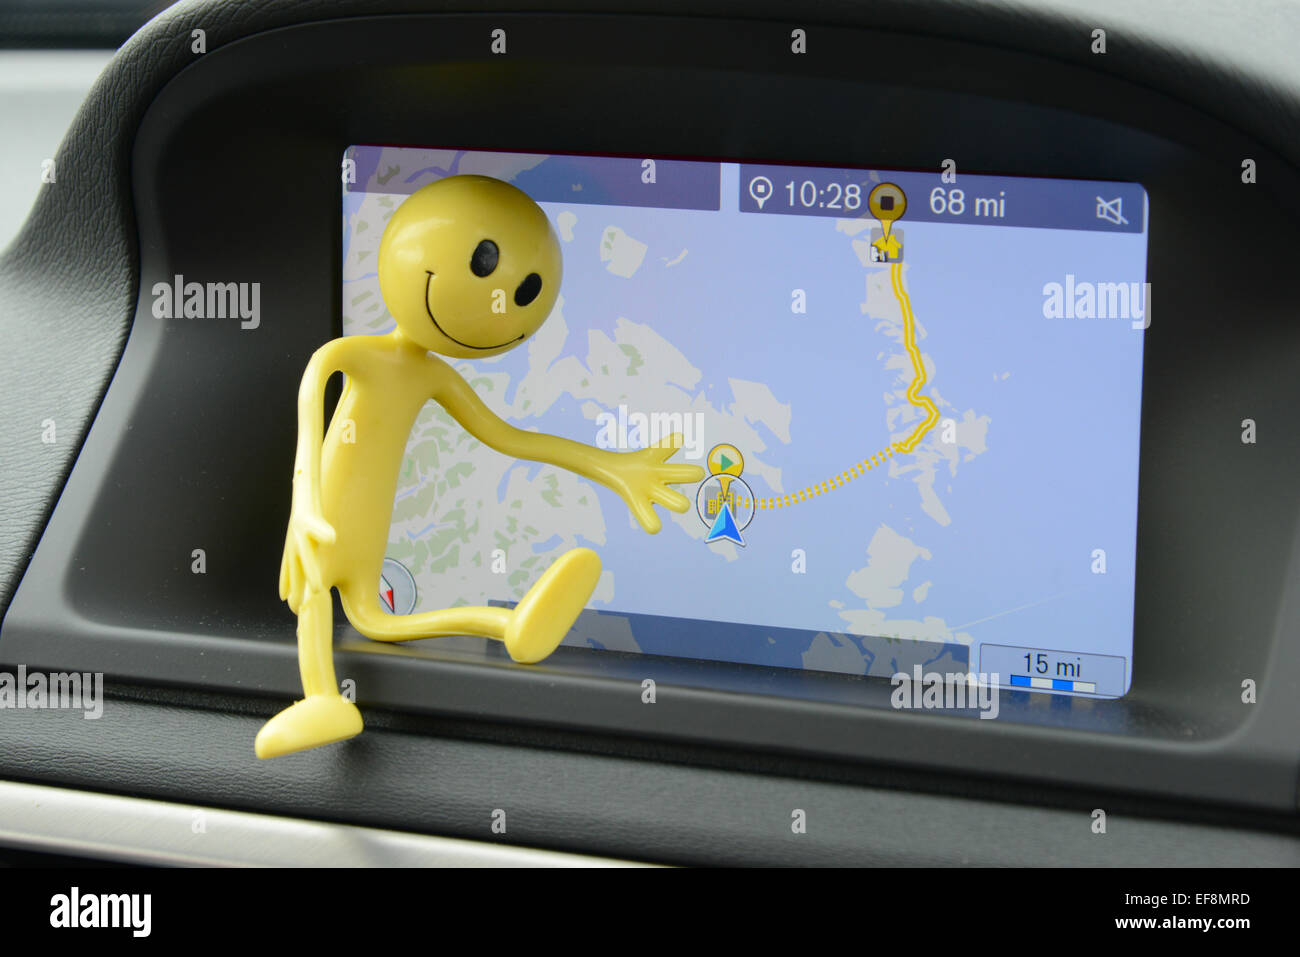 Yellow Smiley Man on holiday in the Outer Hebrides - pointing where he is on the satnav about to take the ferry - Stock Image